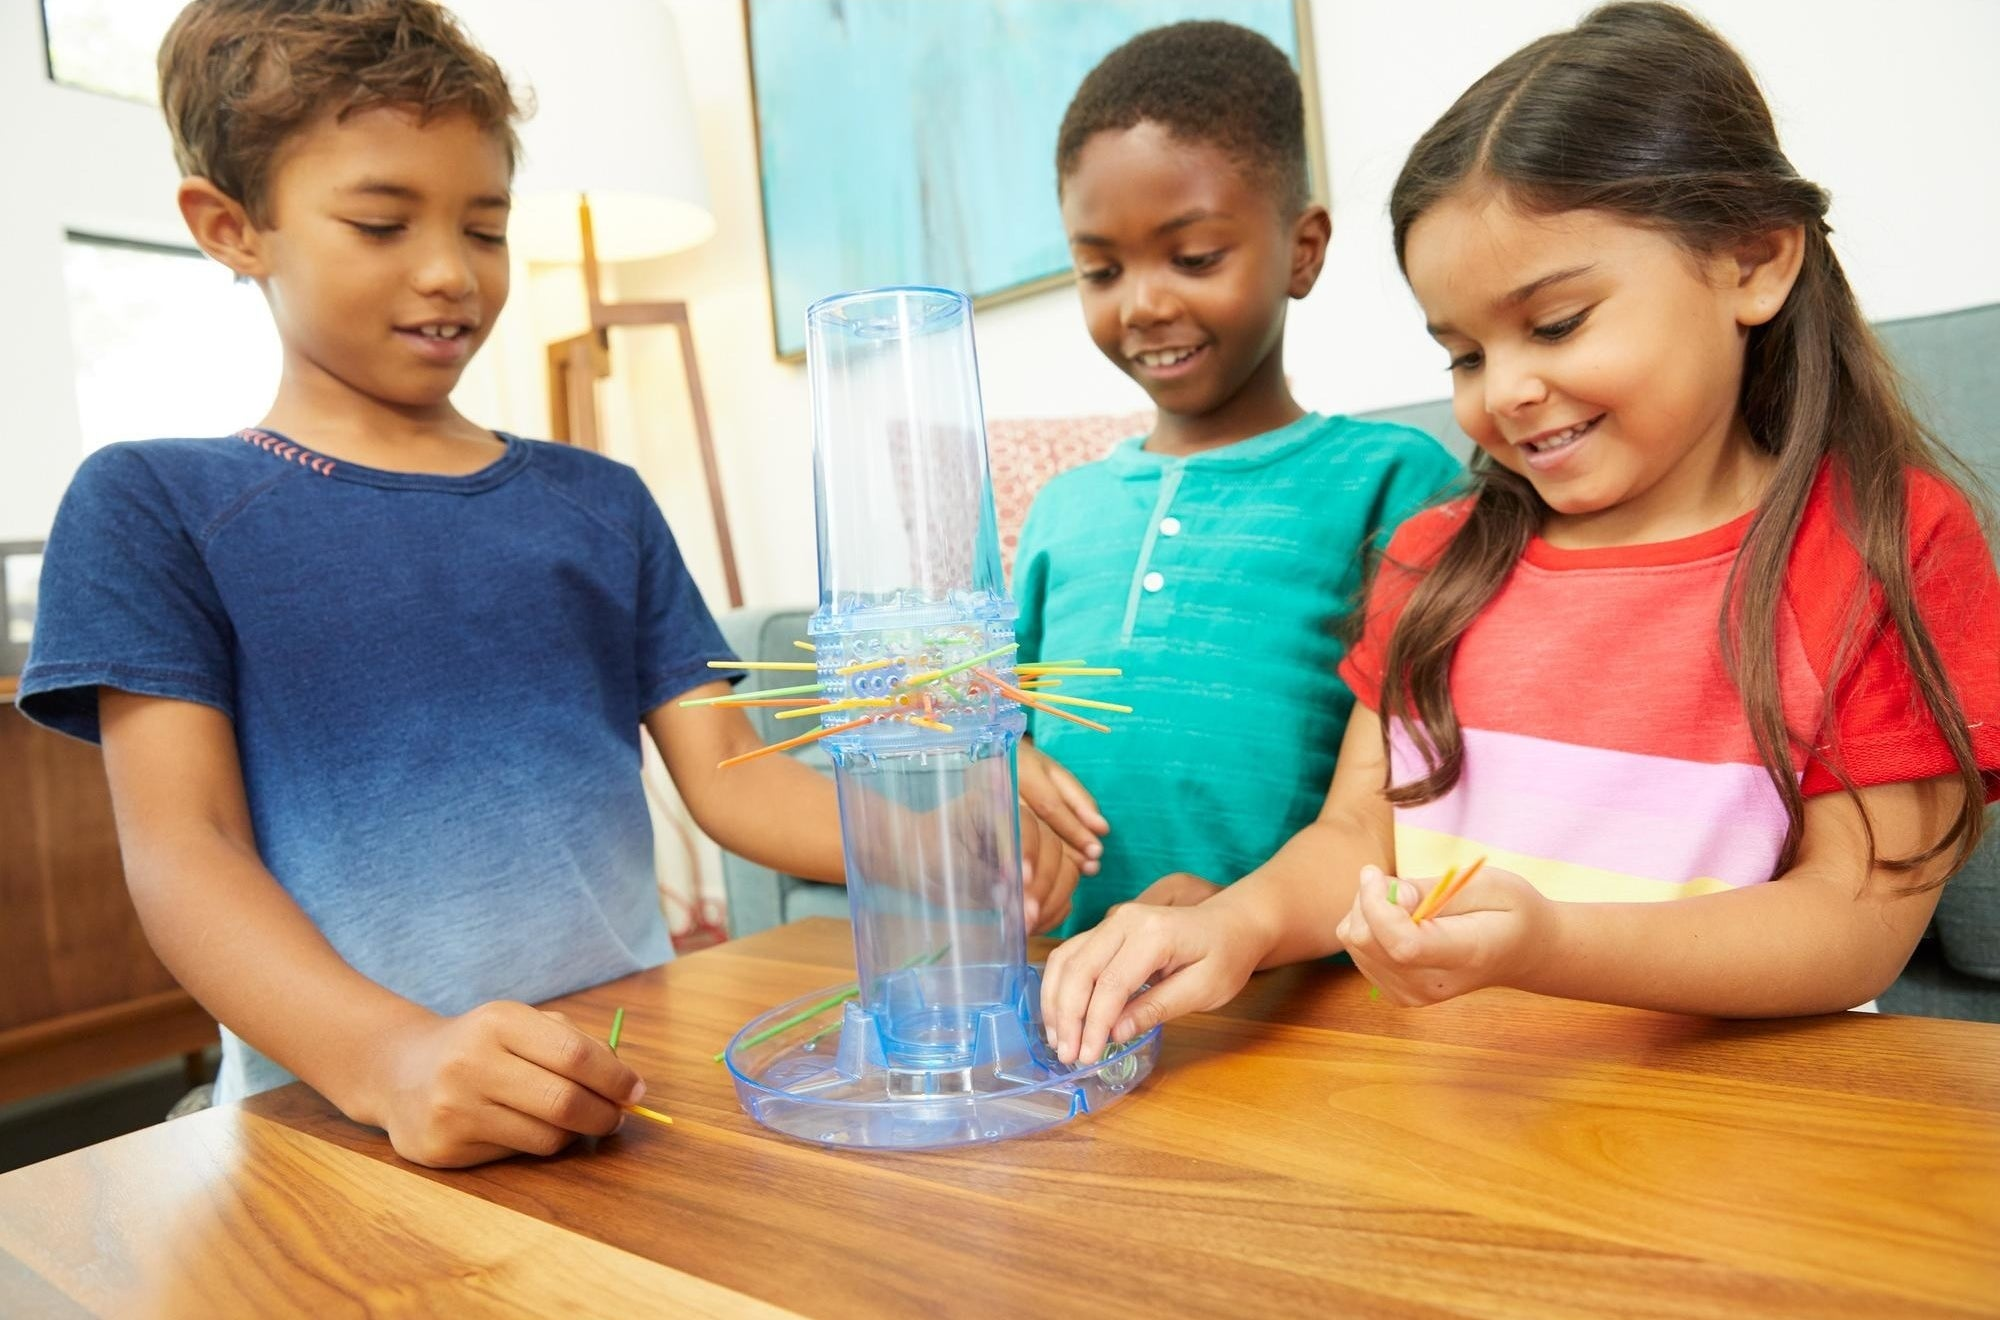 The game, which involves a large clear tube—players must insert sticks through the middle to create a dam, with the goal of keeping marbles from falling through